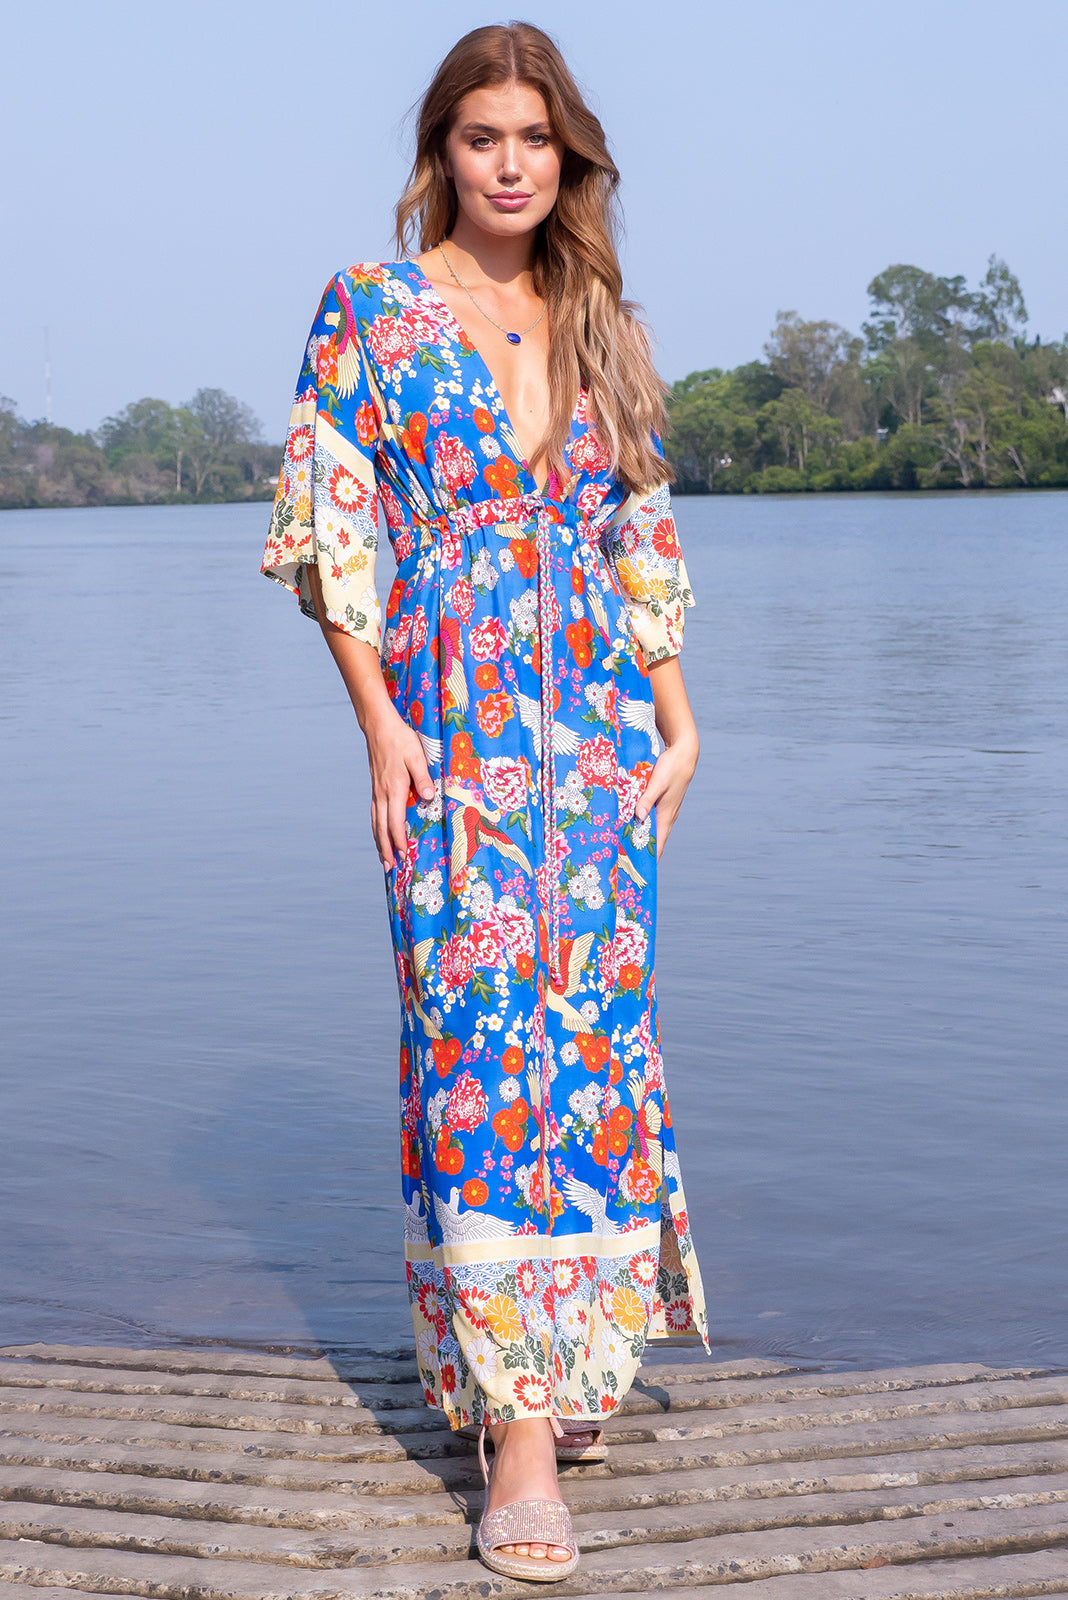 Annabella Ming Bird Sky Caftan Maxi Dress, bohemian summer style, 100% rayon, deep v neckline, side pockets, front drawstring waist, elasticated waist back, braided multicoloured drawstring tassels and beading, deep sky blue base with red, gold and white bird and floral design, striped border pattern.